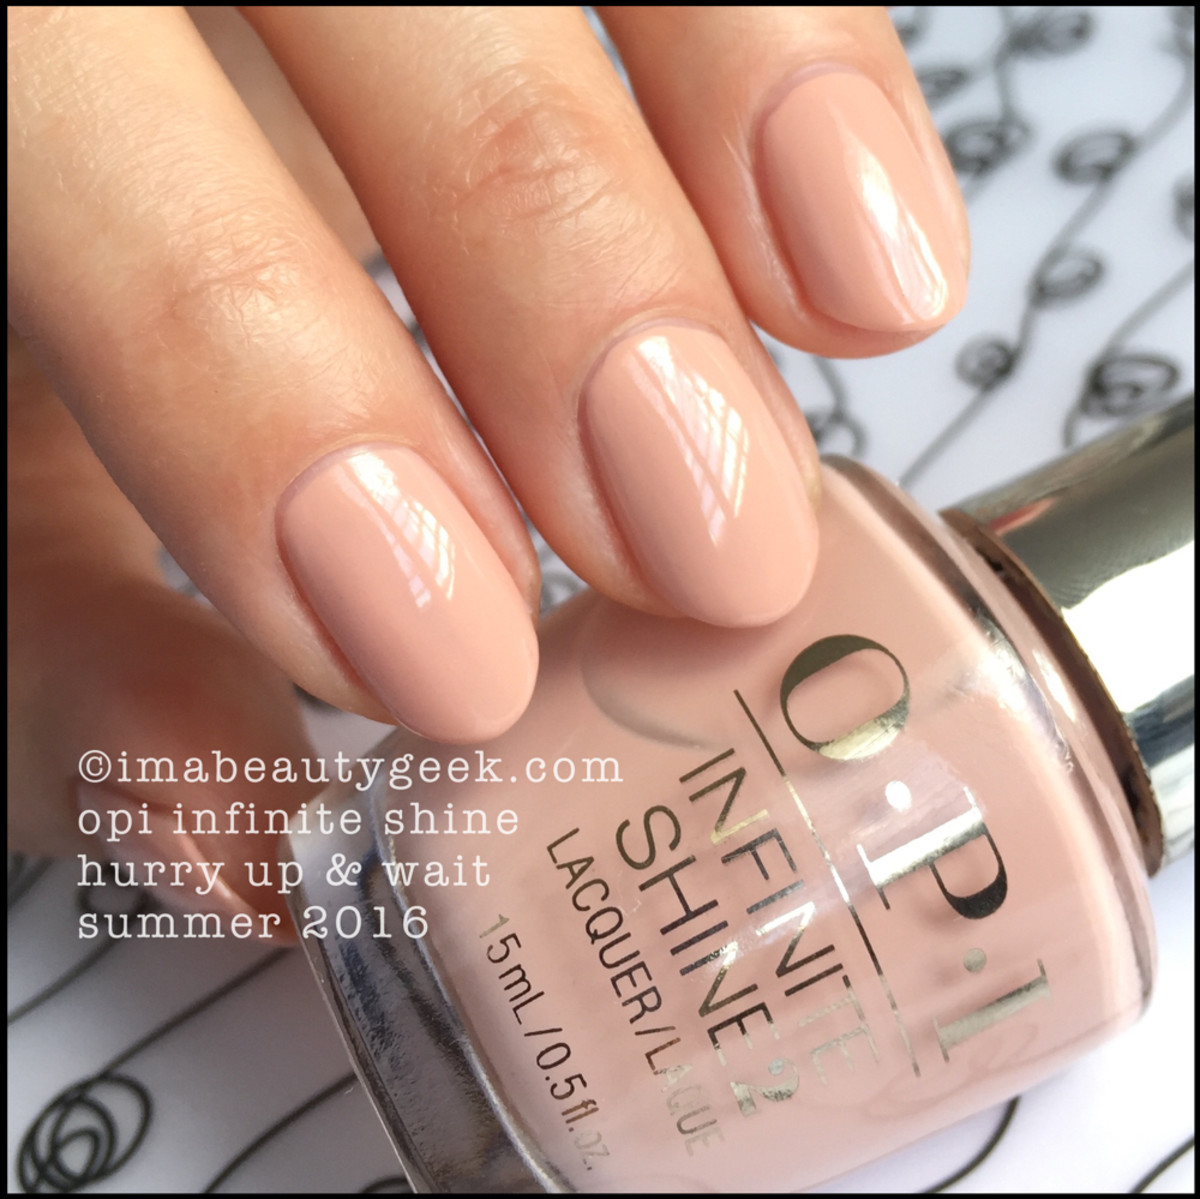 OPI Infinite Shine Hurry Up and Wait_OPI Infinite Shine swatches Summer 2016